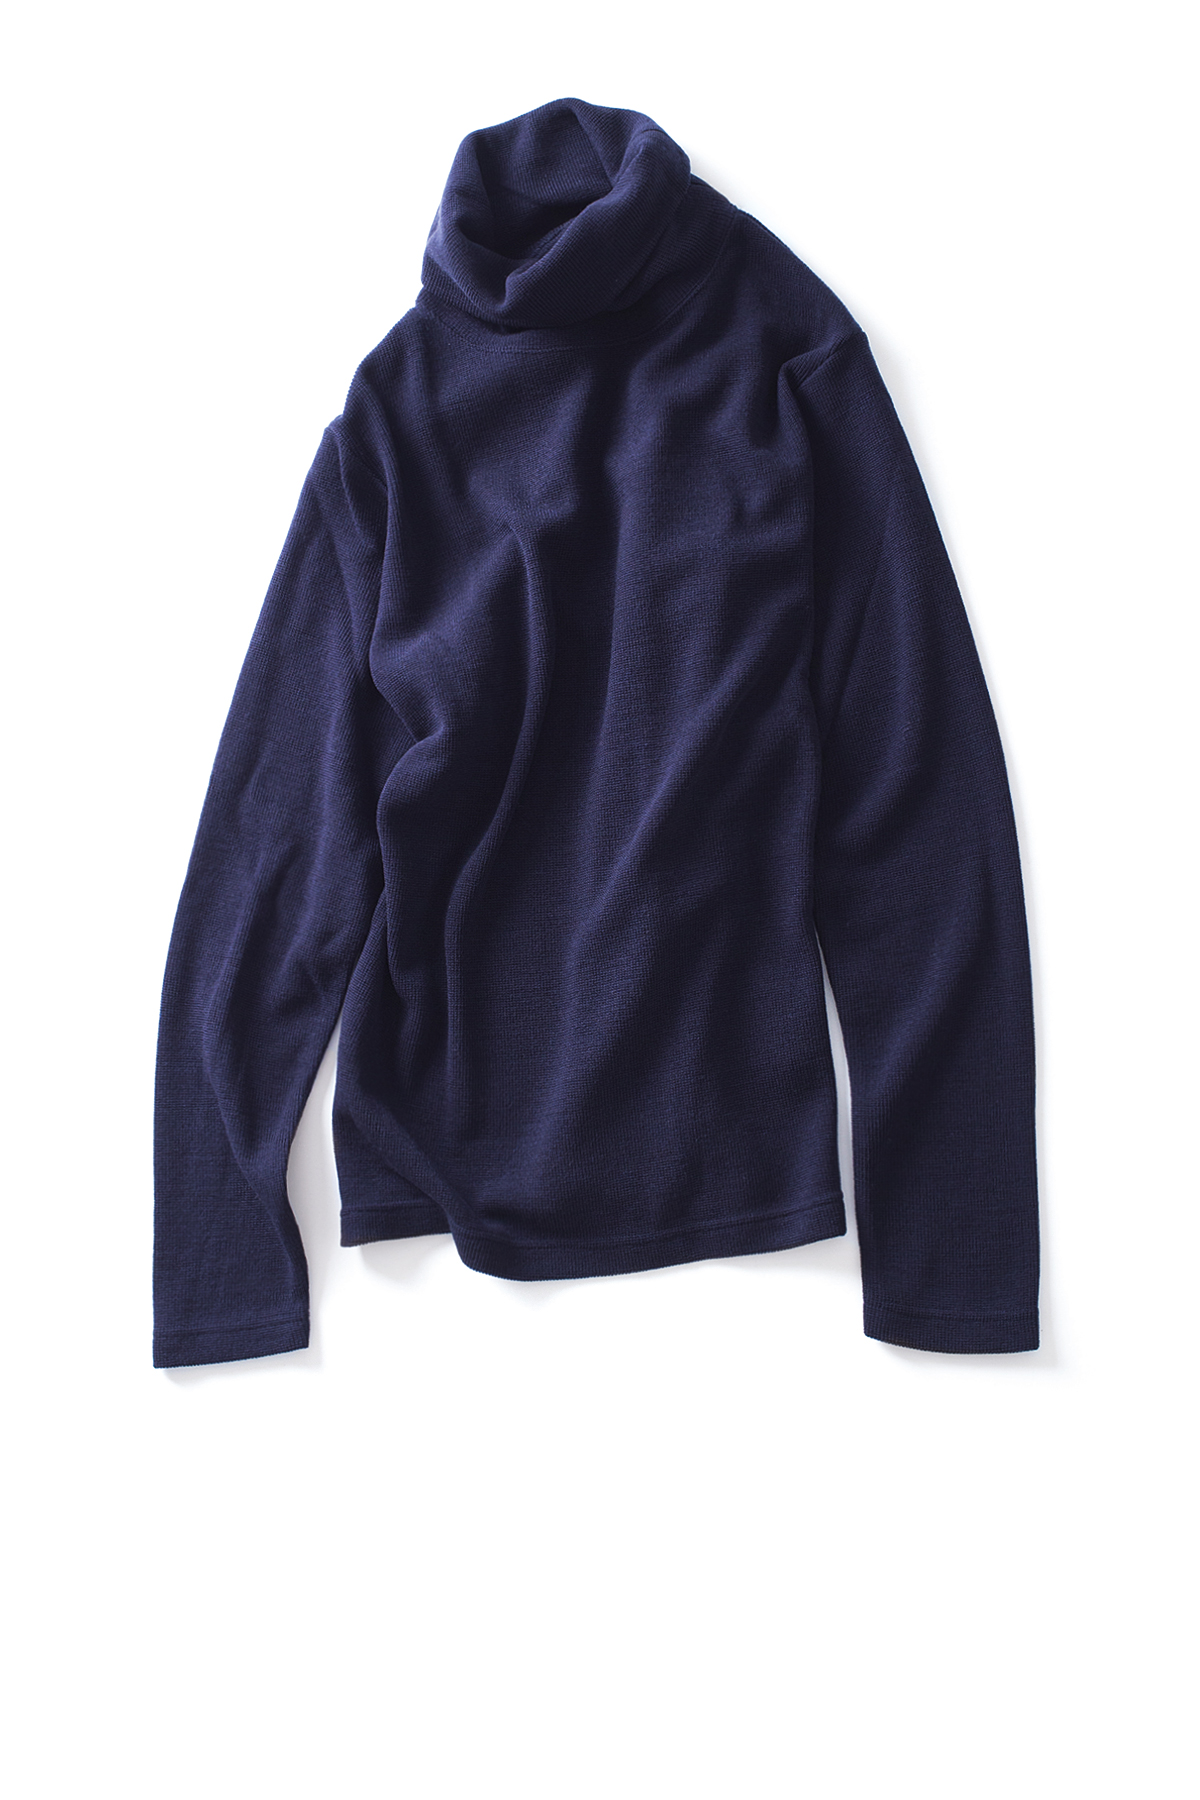 WHITE MOUNTAINEERING : Turtle Neck Pullover (Navy)